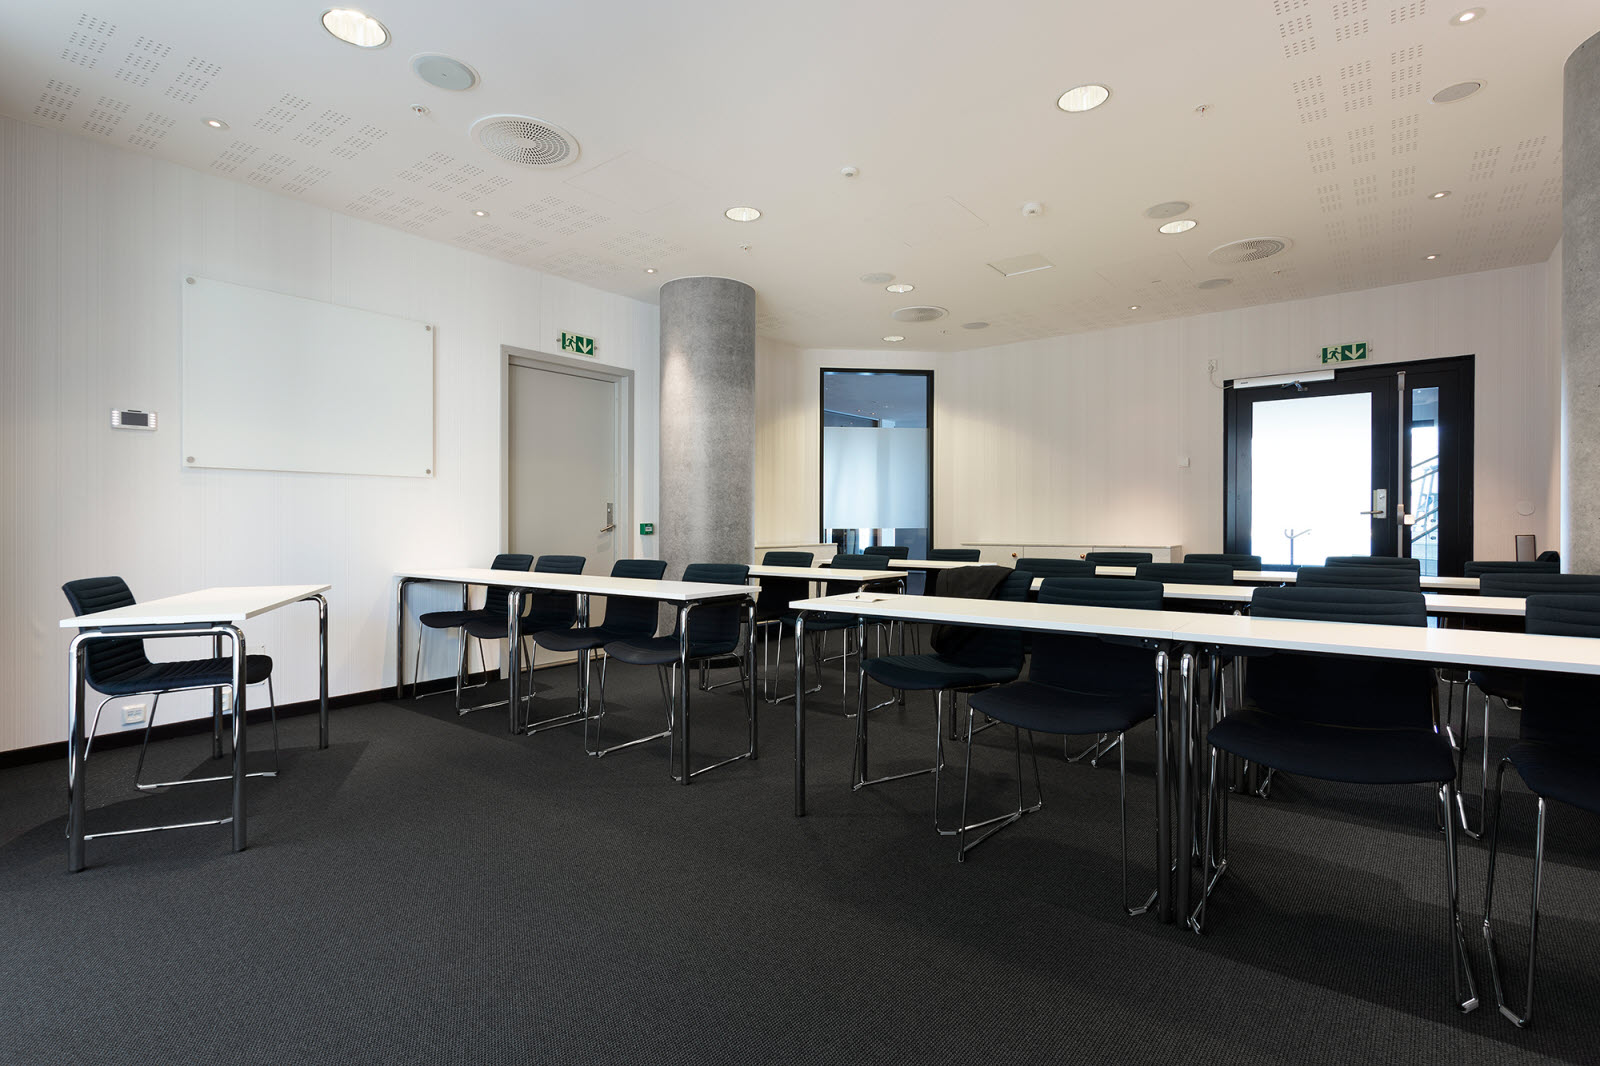 Scandic Havet, Bodo, meeting room, conference, school